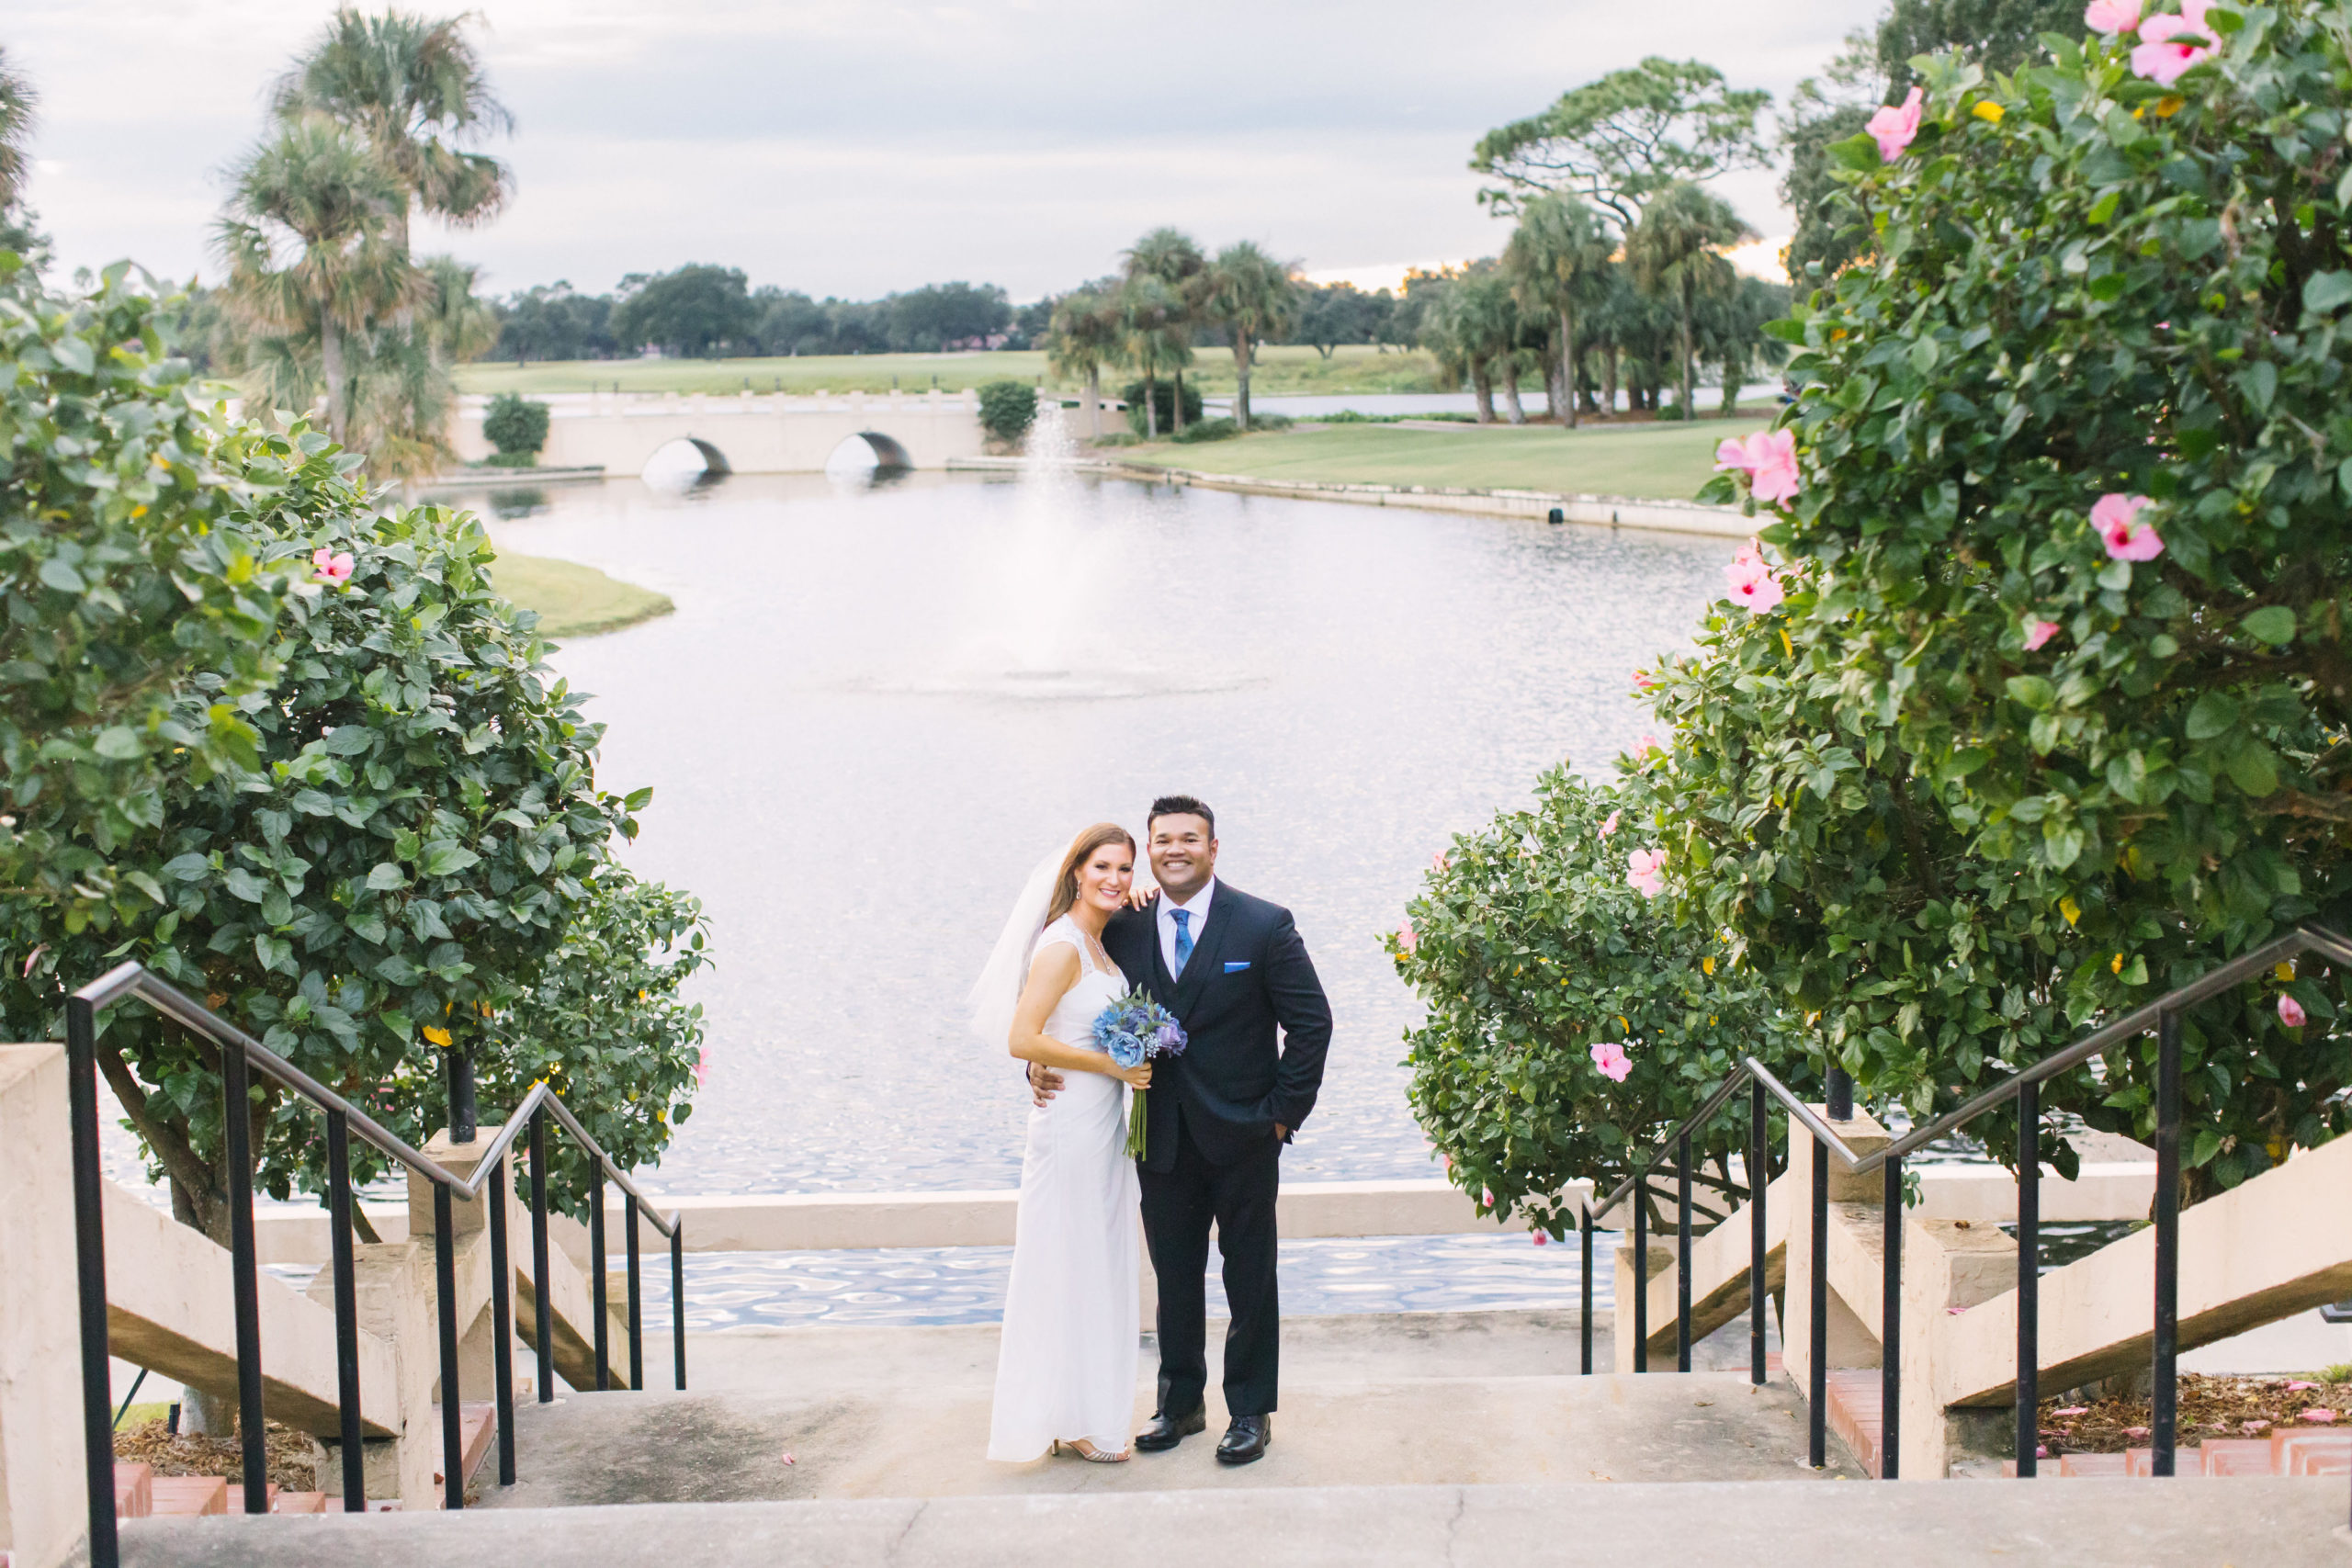 Bride with blue bouquet standing next to her groom on a staircase of pink hibiscus trees in front of a lake